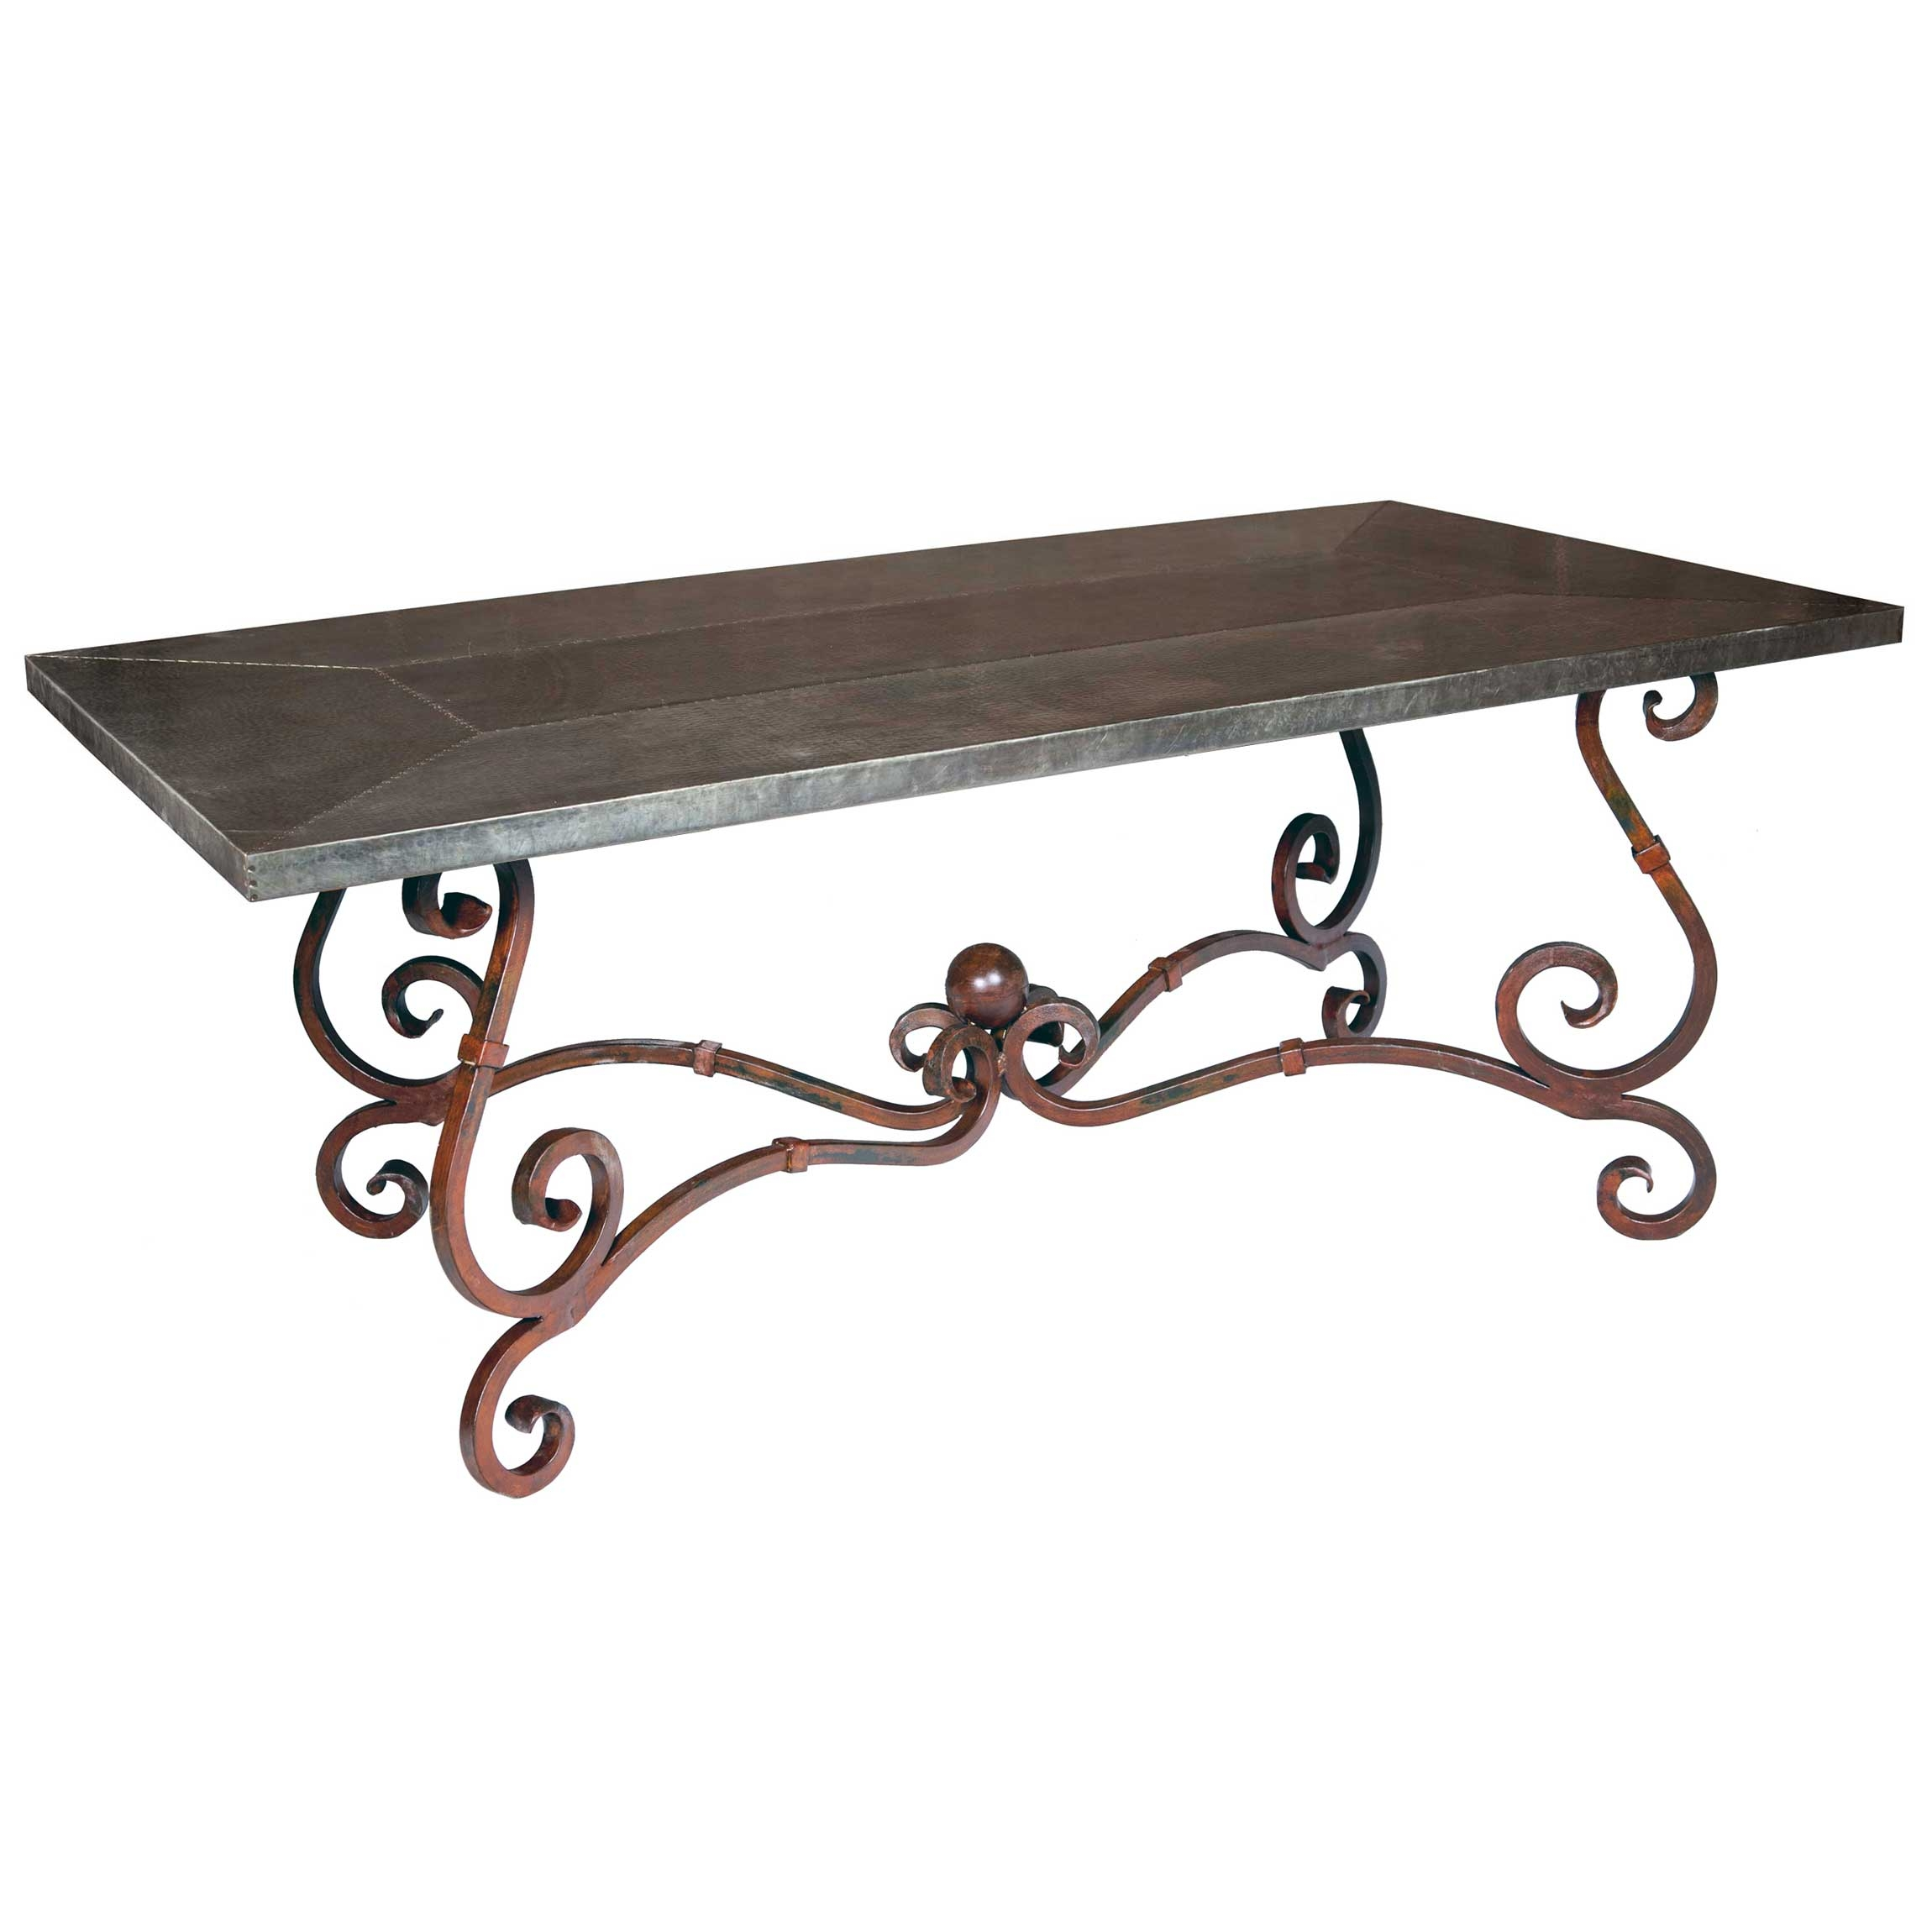 French Iron Rectangle Dining Table With Hammered Zinc Top